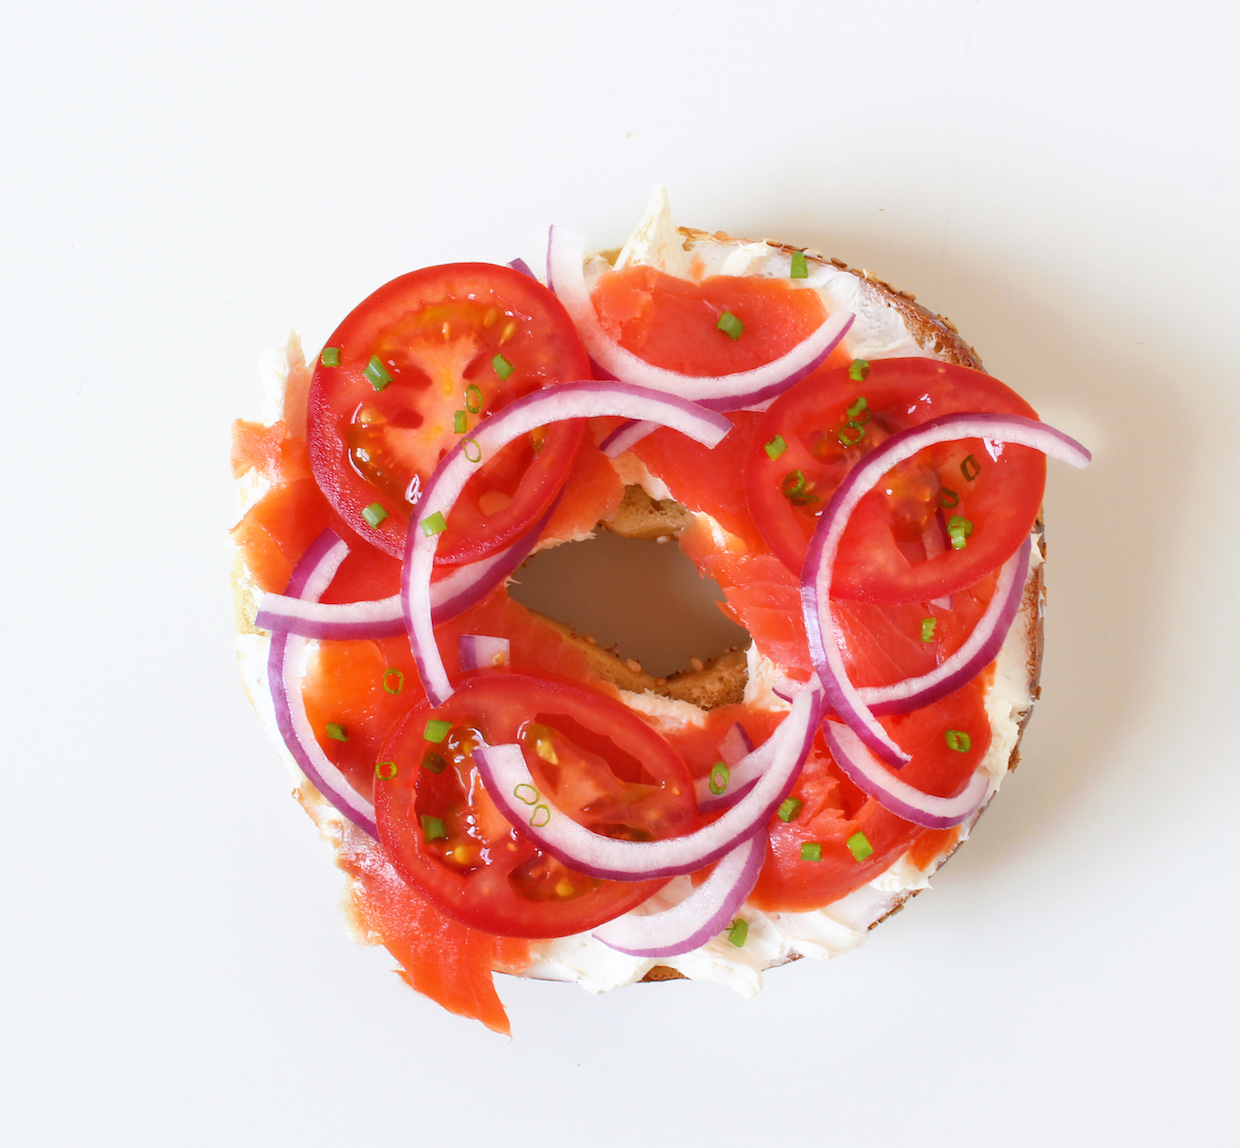 cream-cheese-lox-tomato-and-onion-bagel